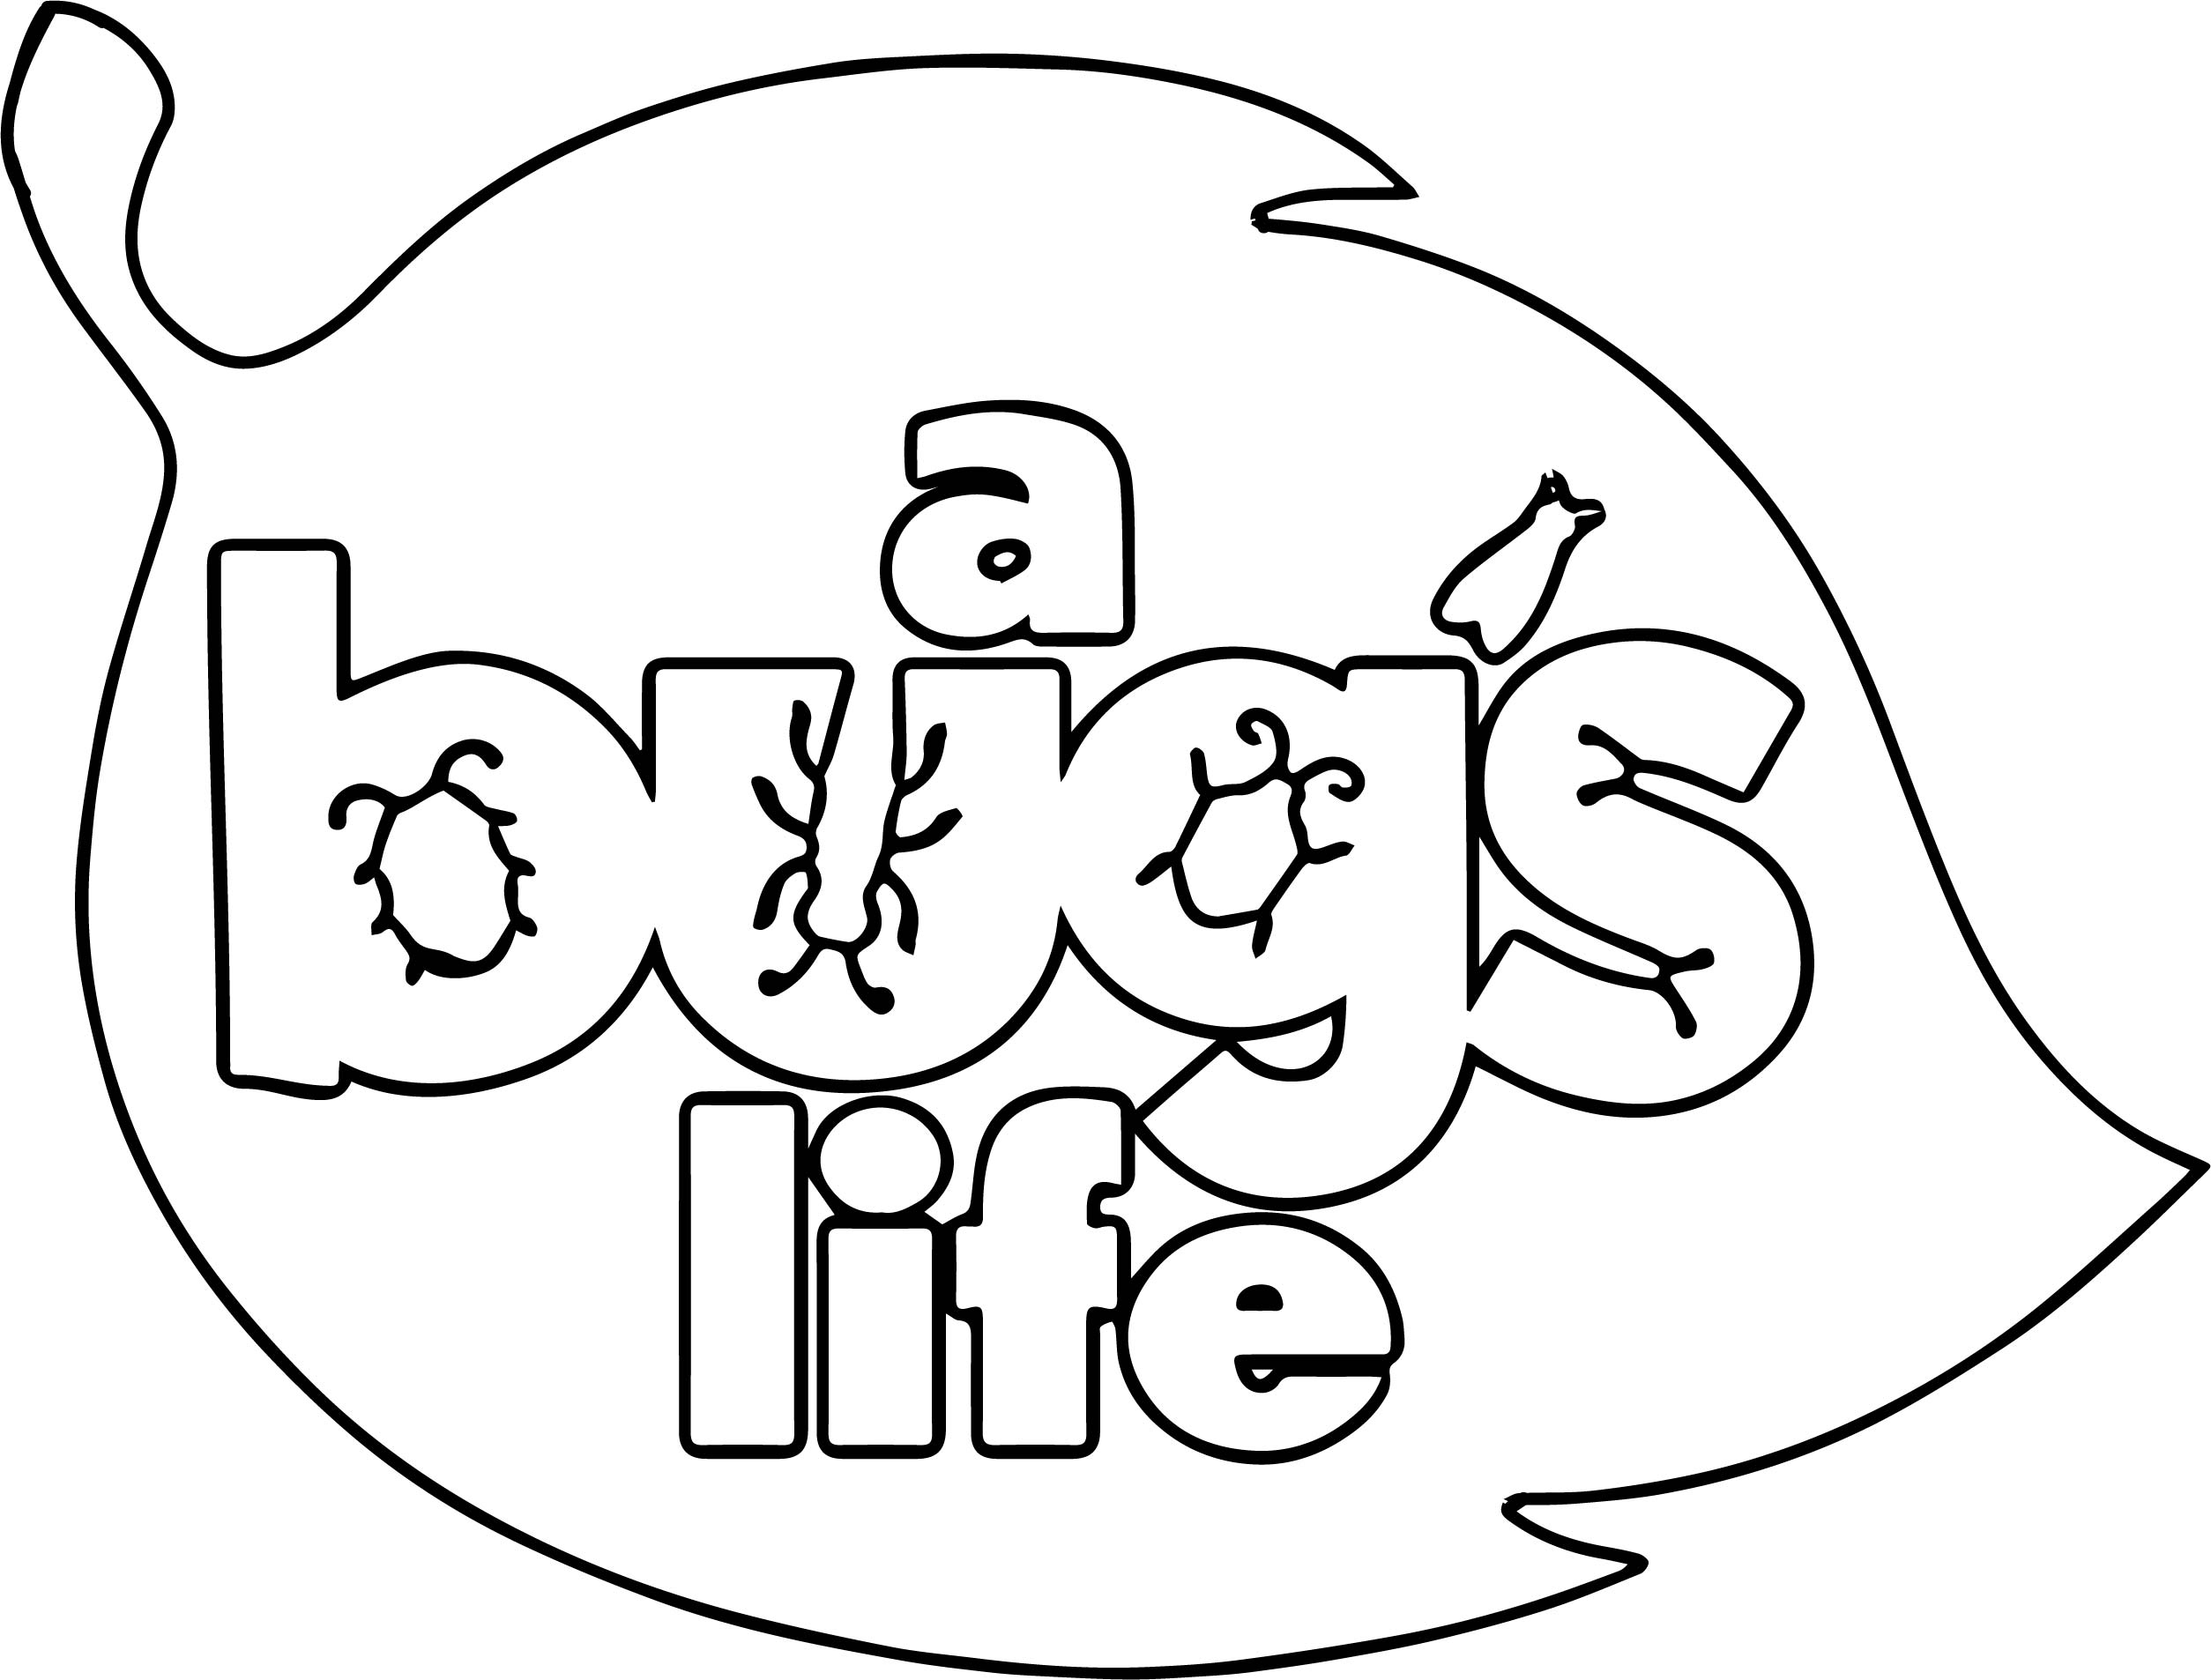 A Bugs Life Logo Leaf Coloring Page